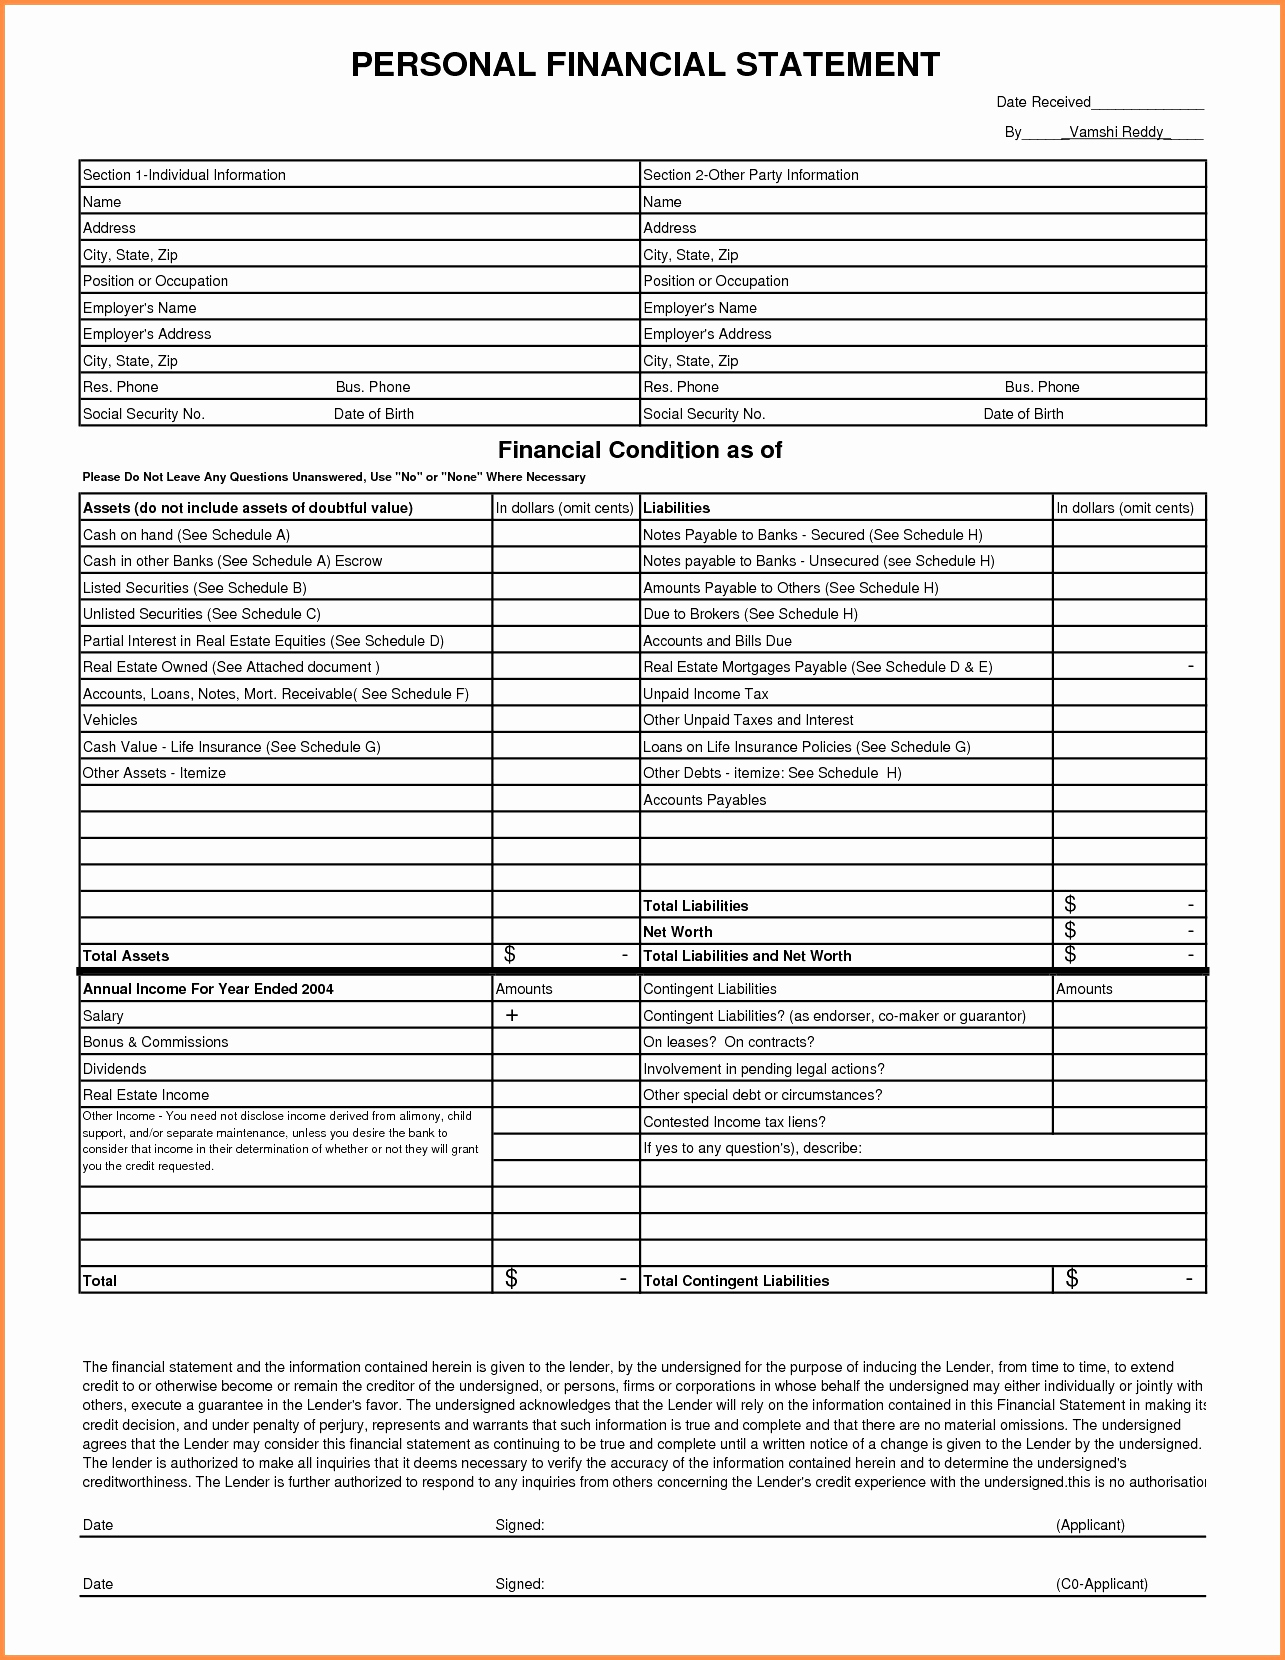 Income Statement Template Xls Awesome In E Tax Spreadsheet Templates Within Income Tax Spreadsheet Templates